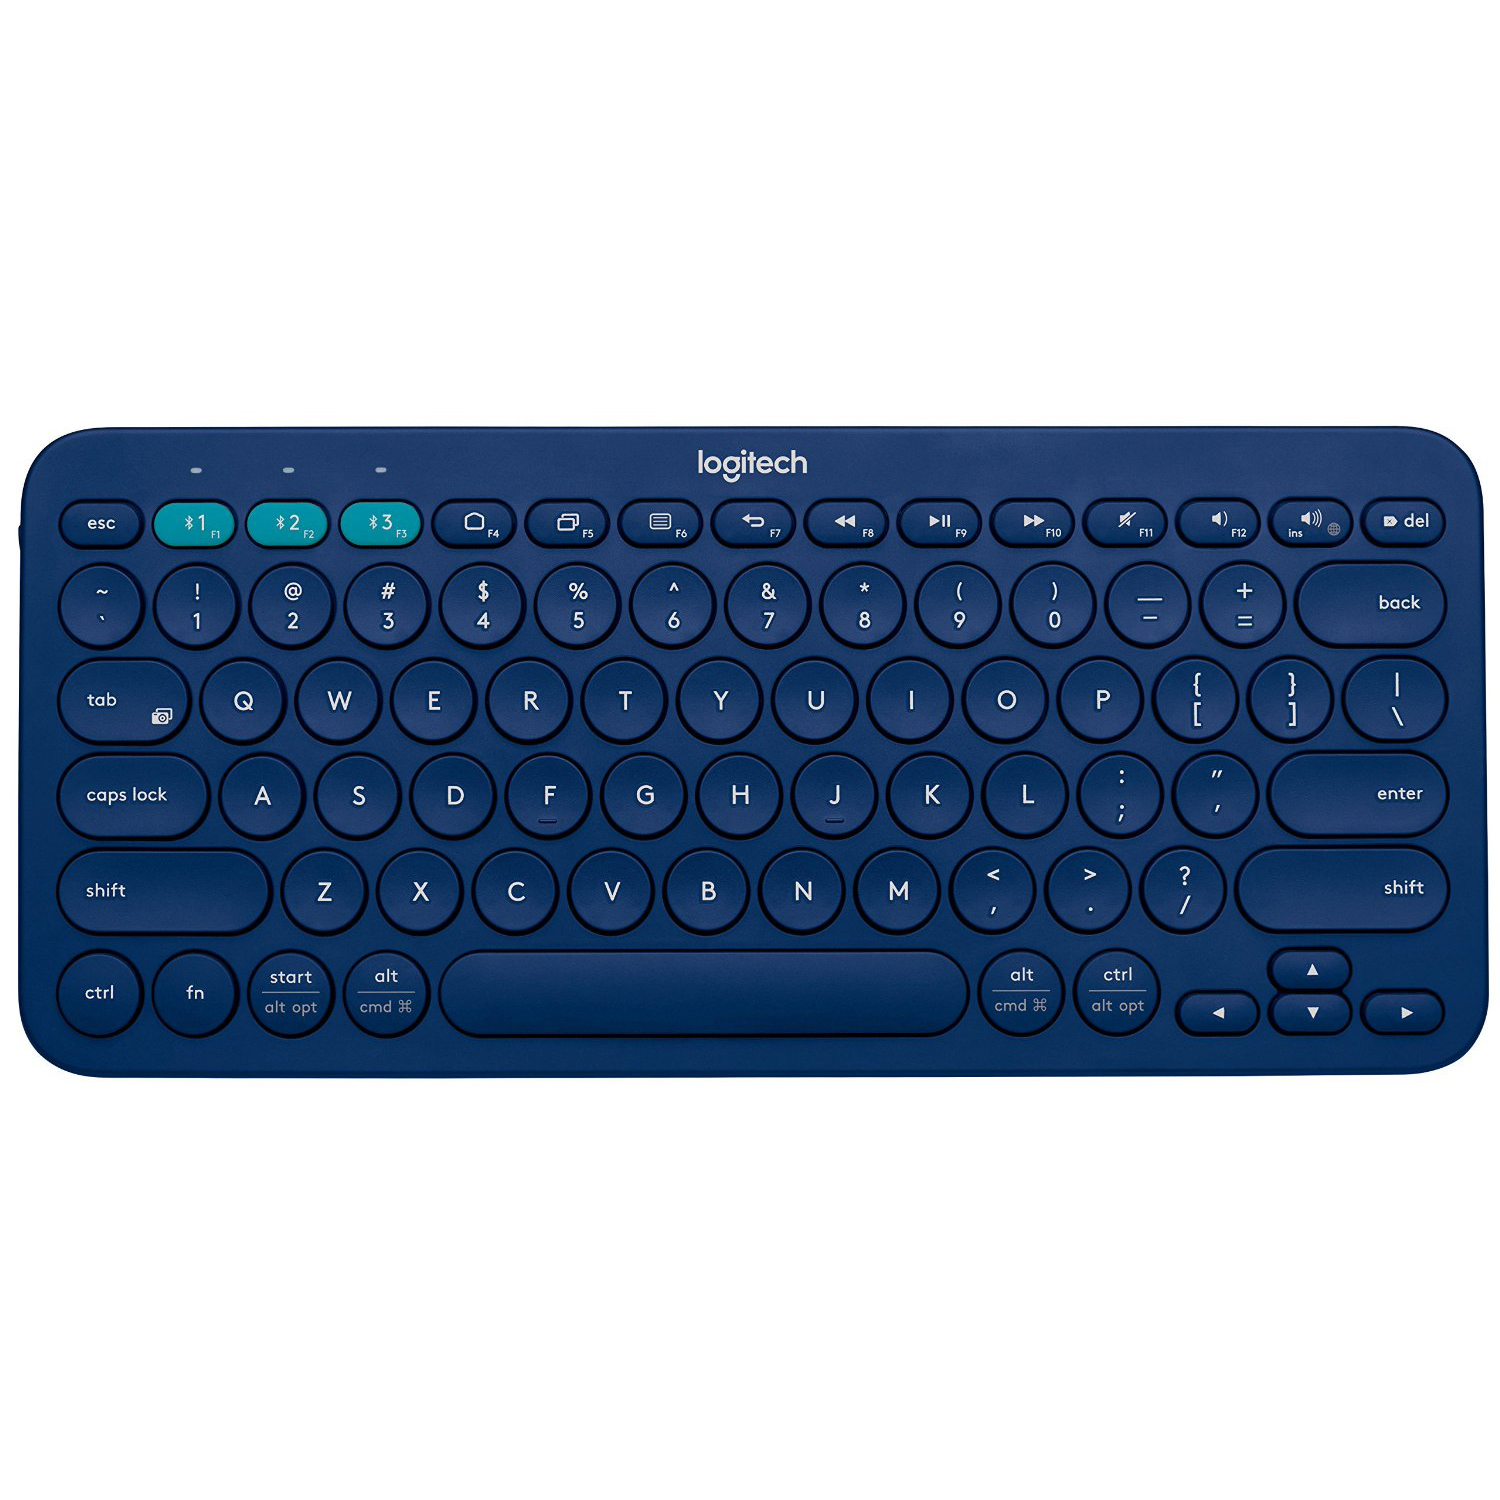 logitech k380 79 key compact slim multi device wireless bluetooth v3 0 keyboard ebay. Black Bedroom Furniture Sets. Home Design Ideas